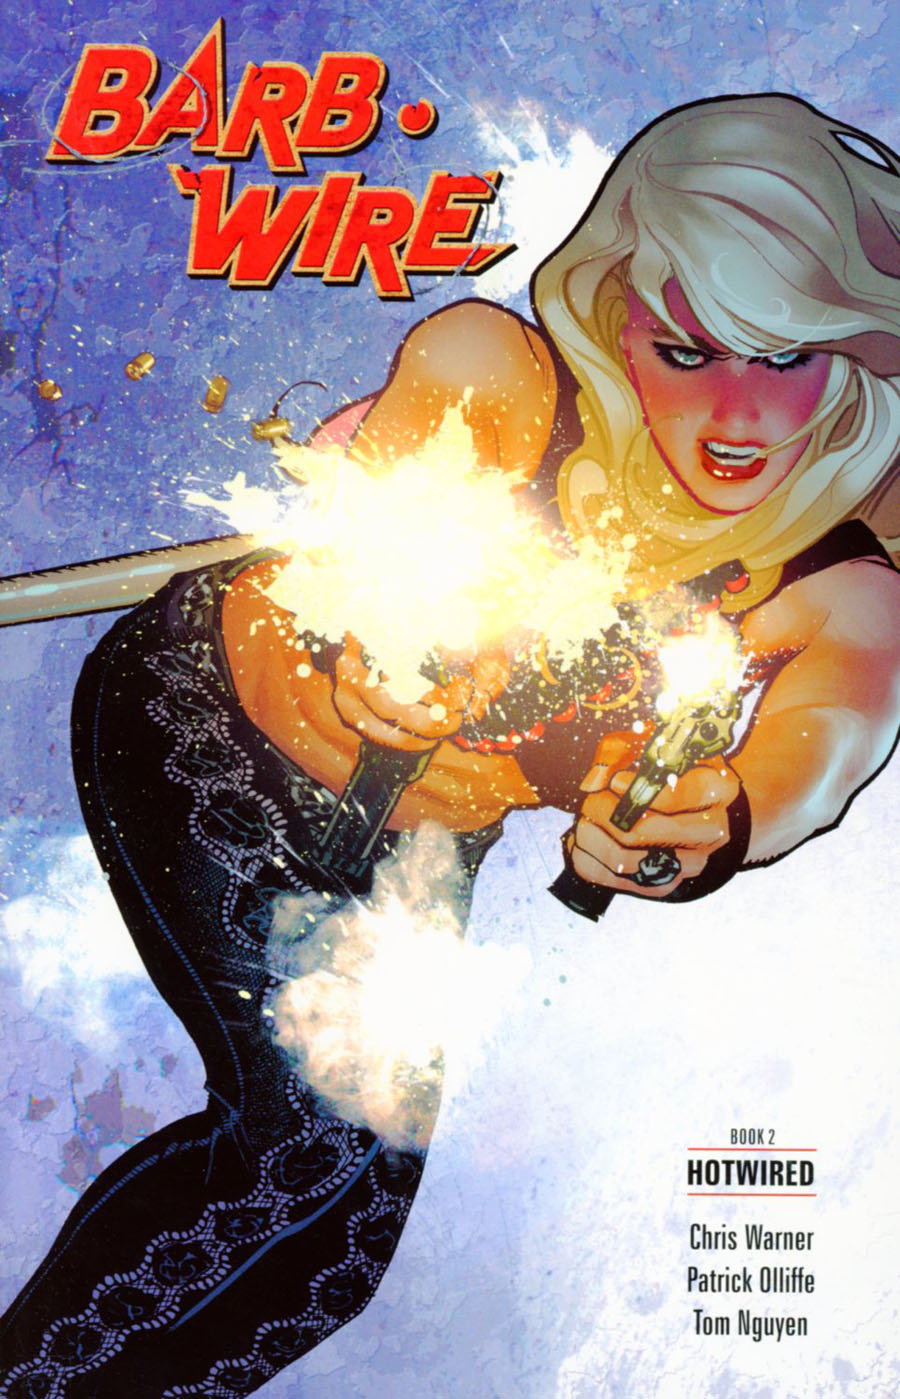 Barb Wire Vol 2 Hotwired TP